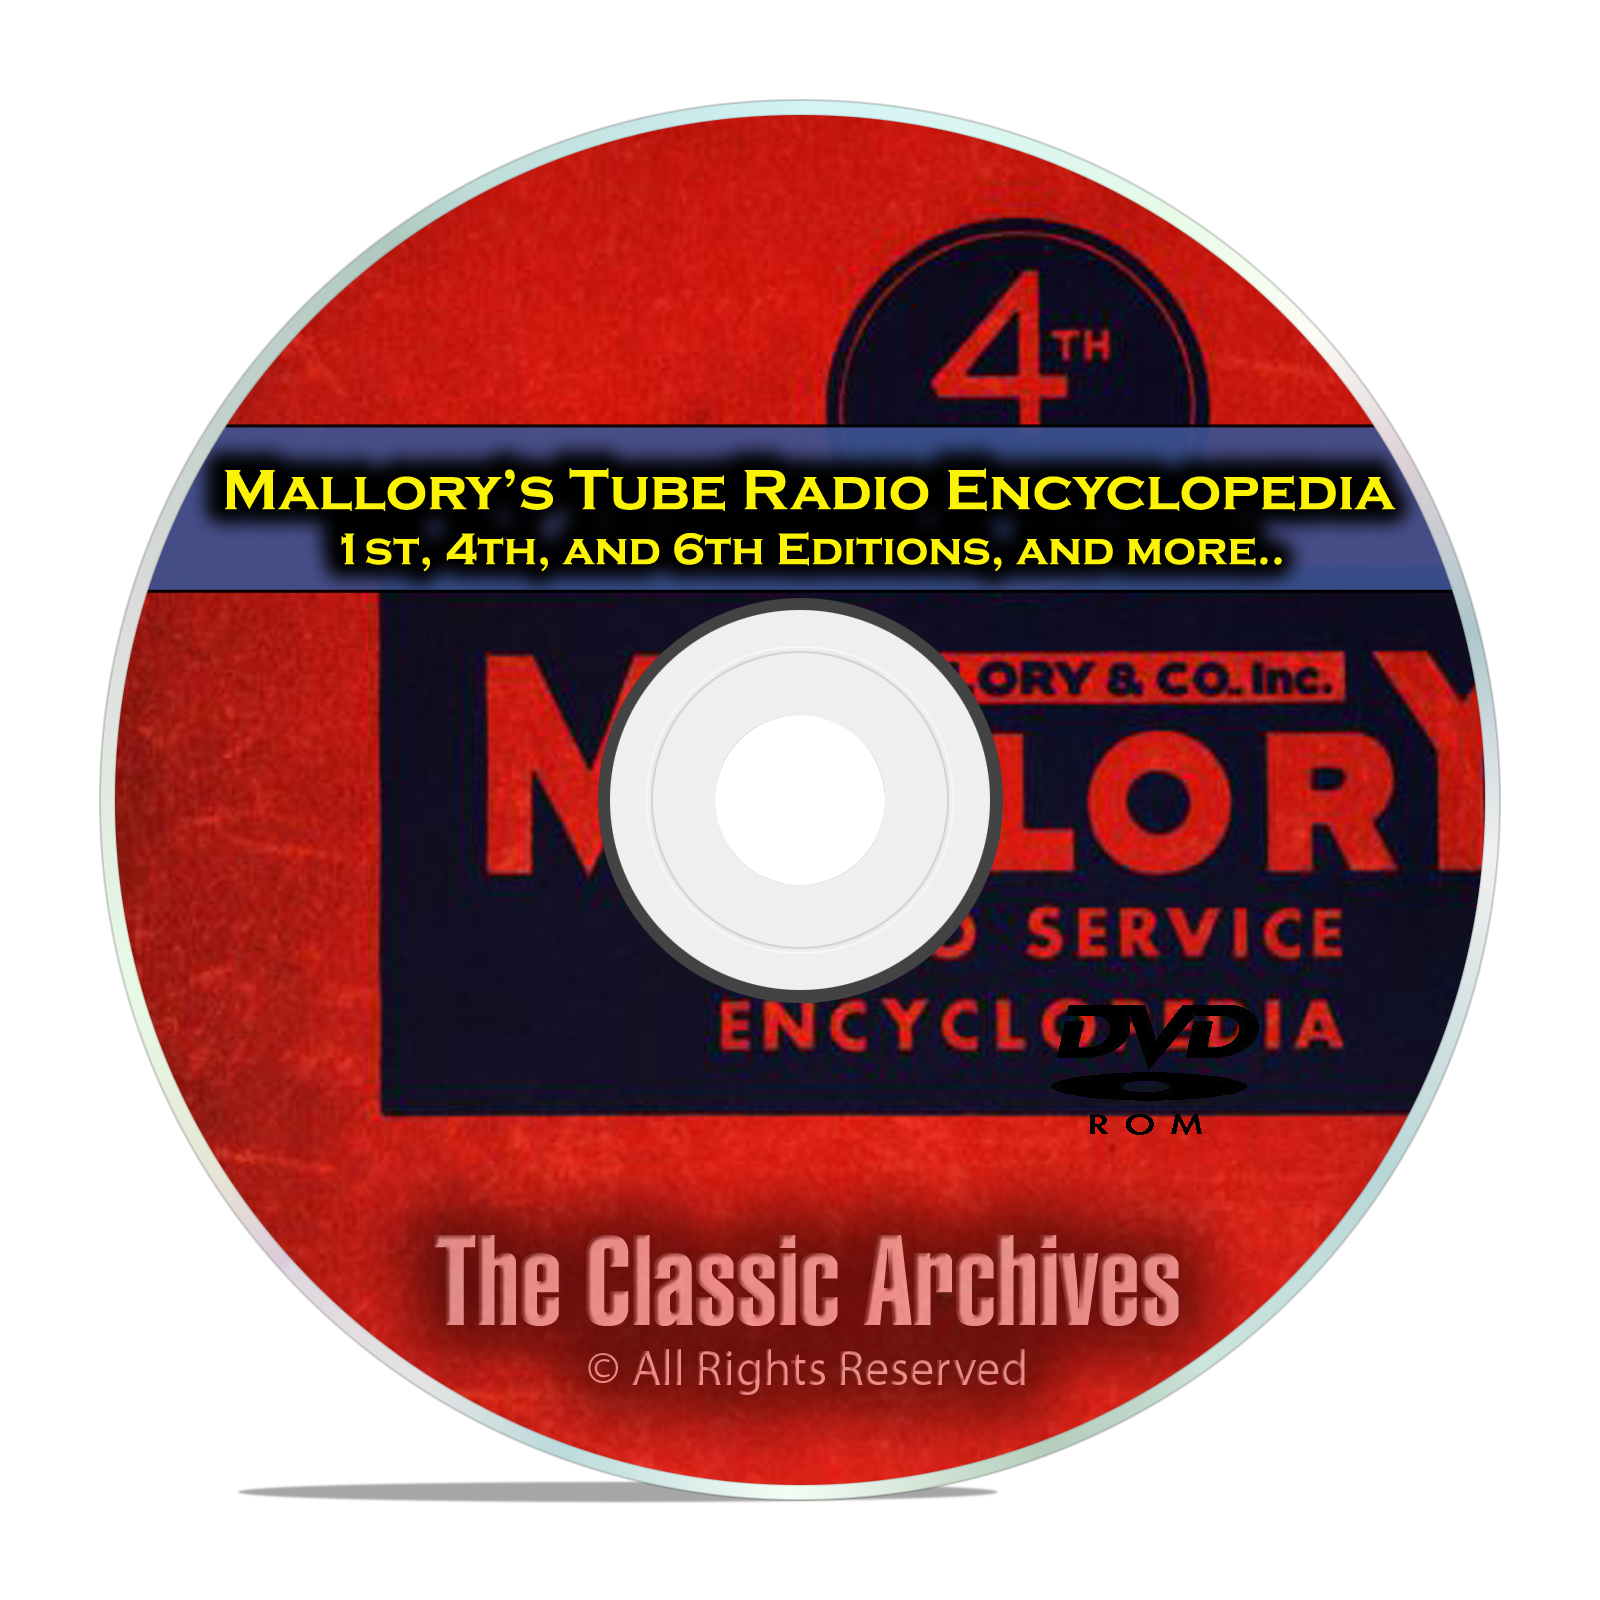 Mallory's Tube Radio Encyclopedia, 1st, 4th, 6th Editions, OTR Rider DVD